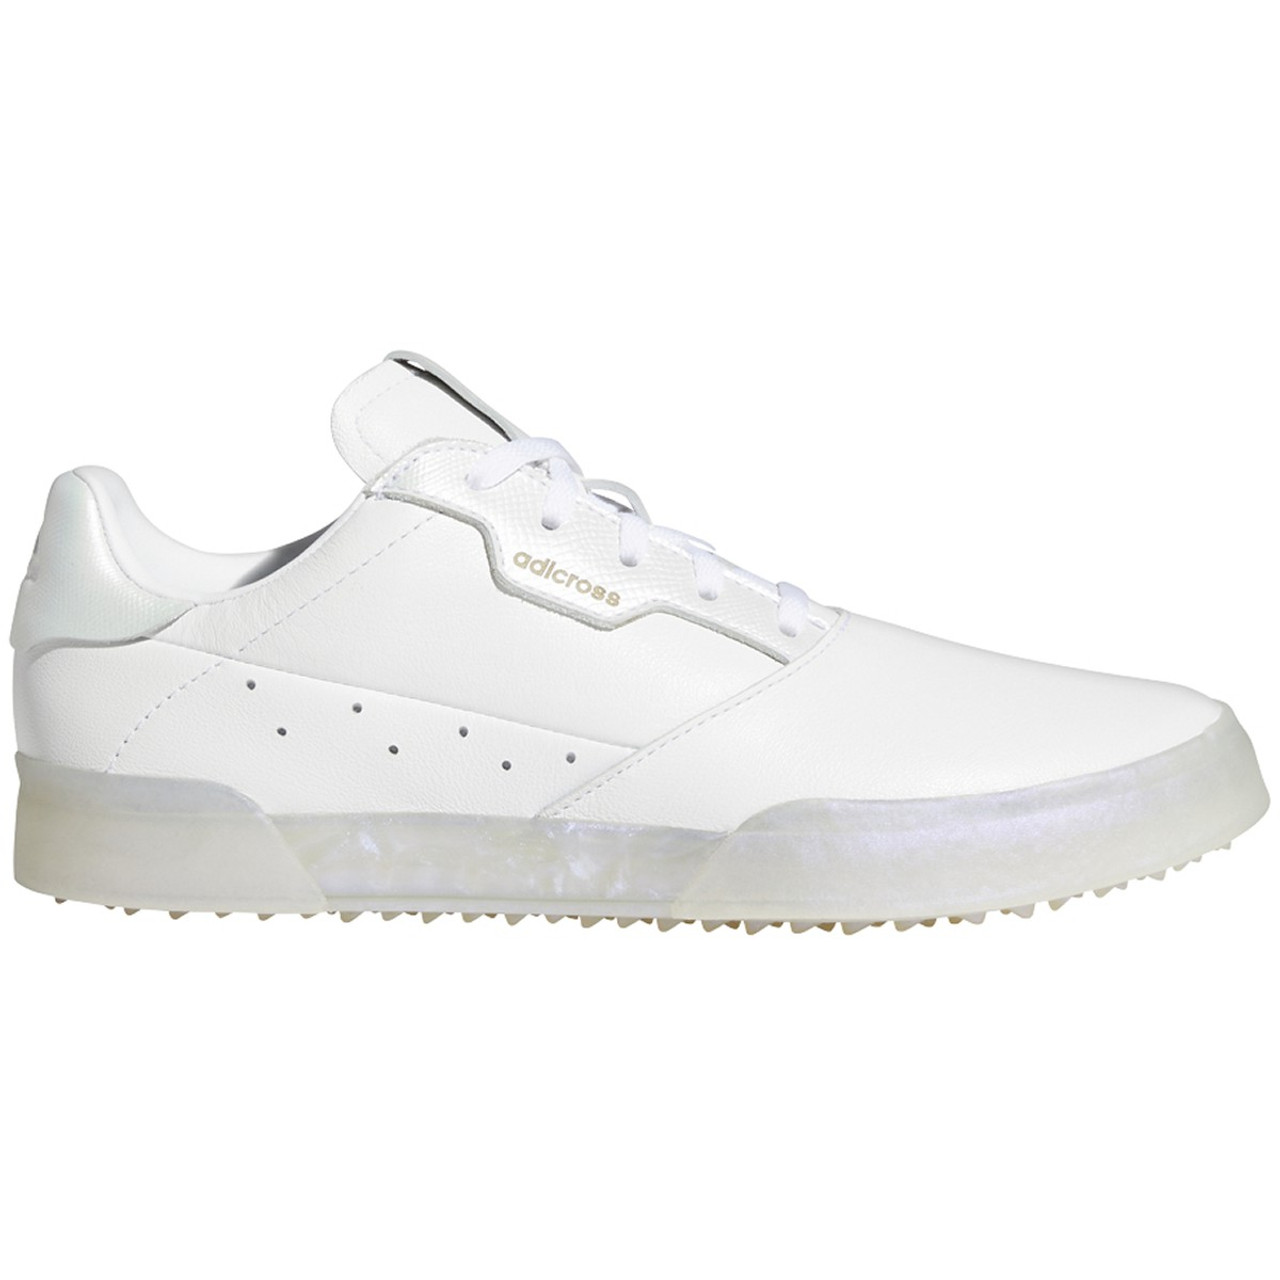 Adidas Womens Adicross Retro Golf Shoes - White / White / Clear Mint